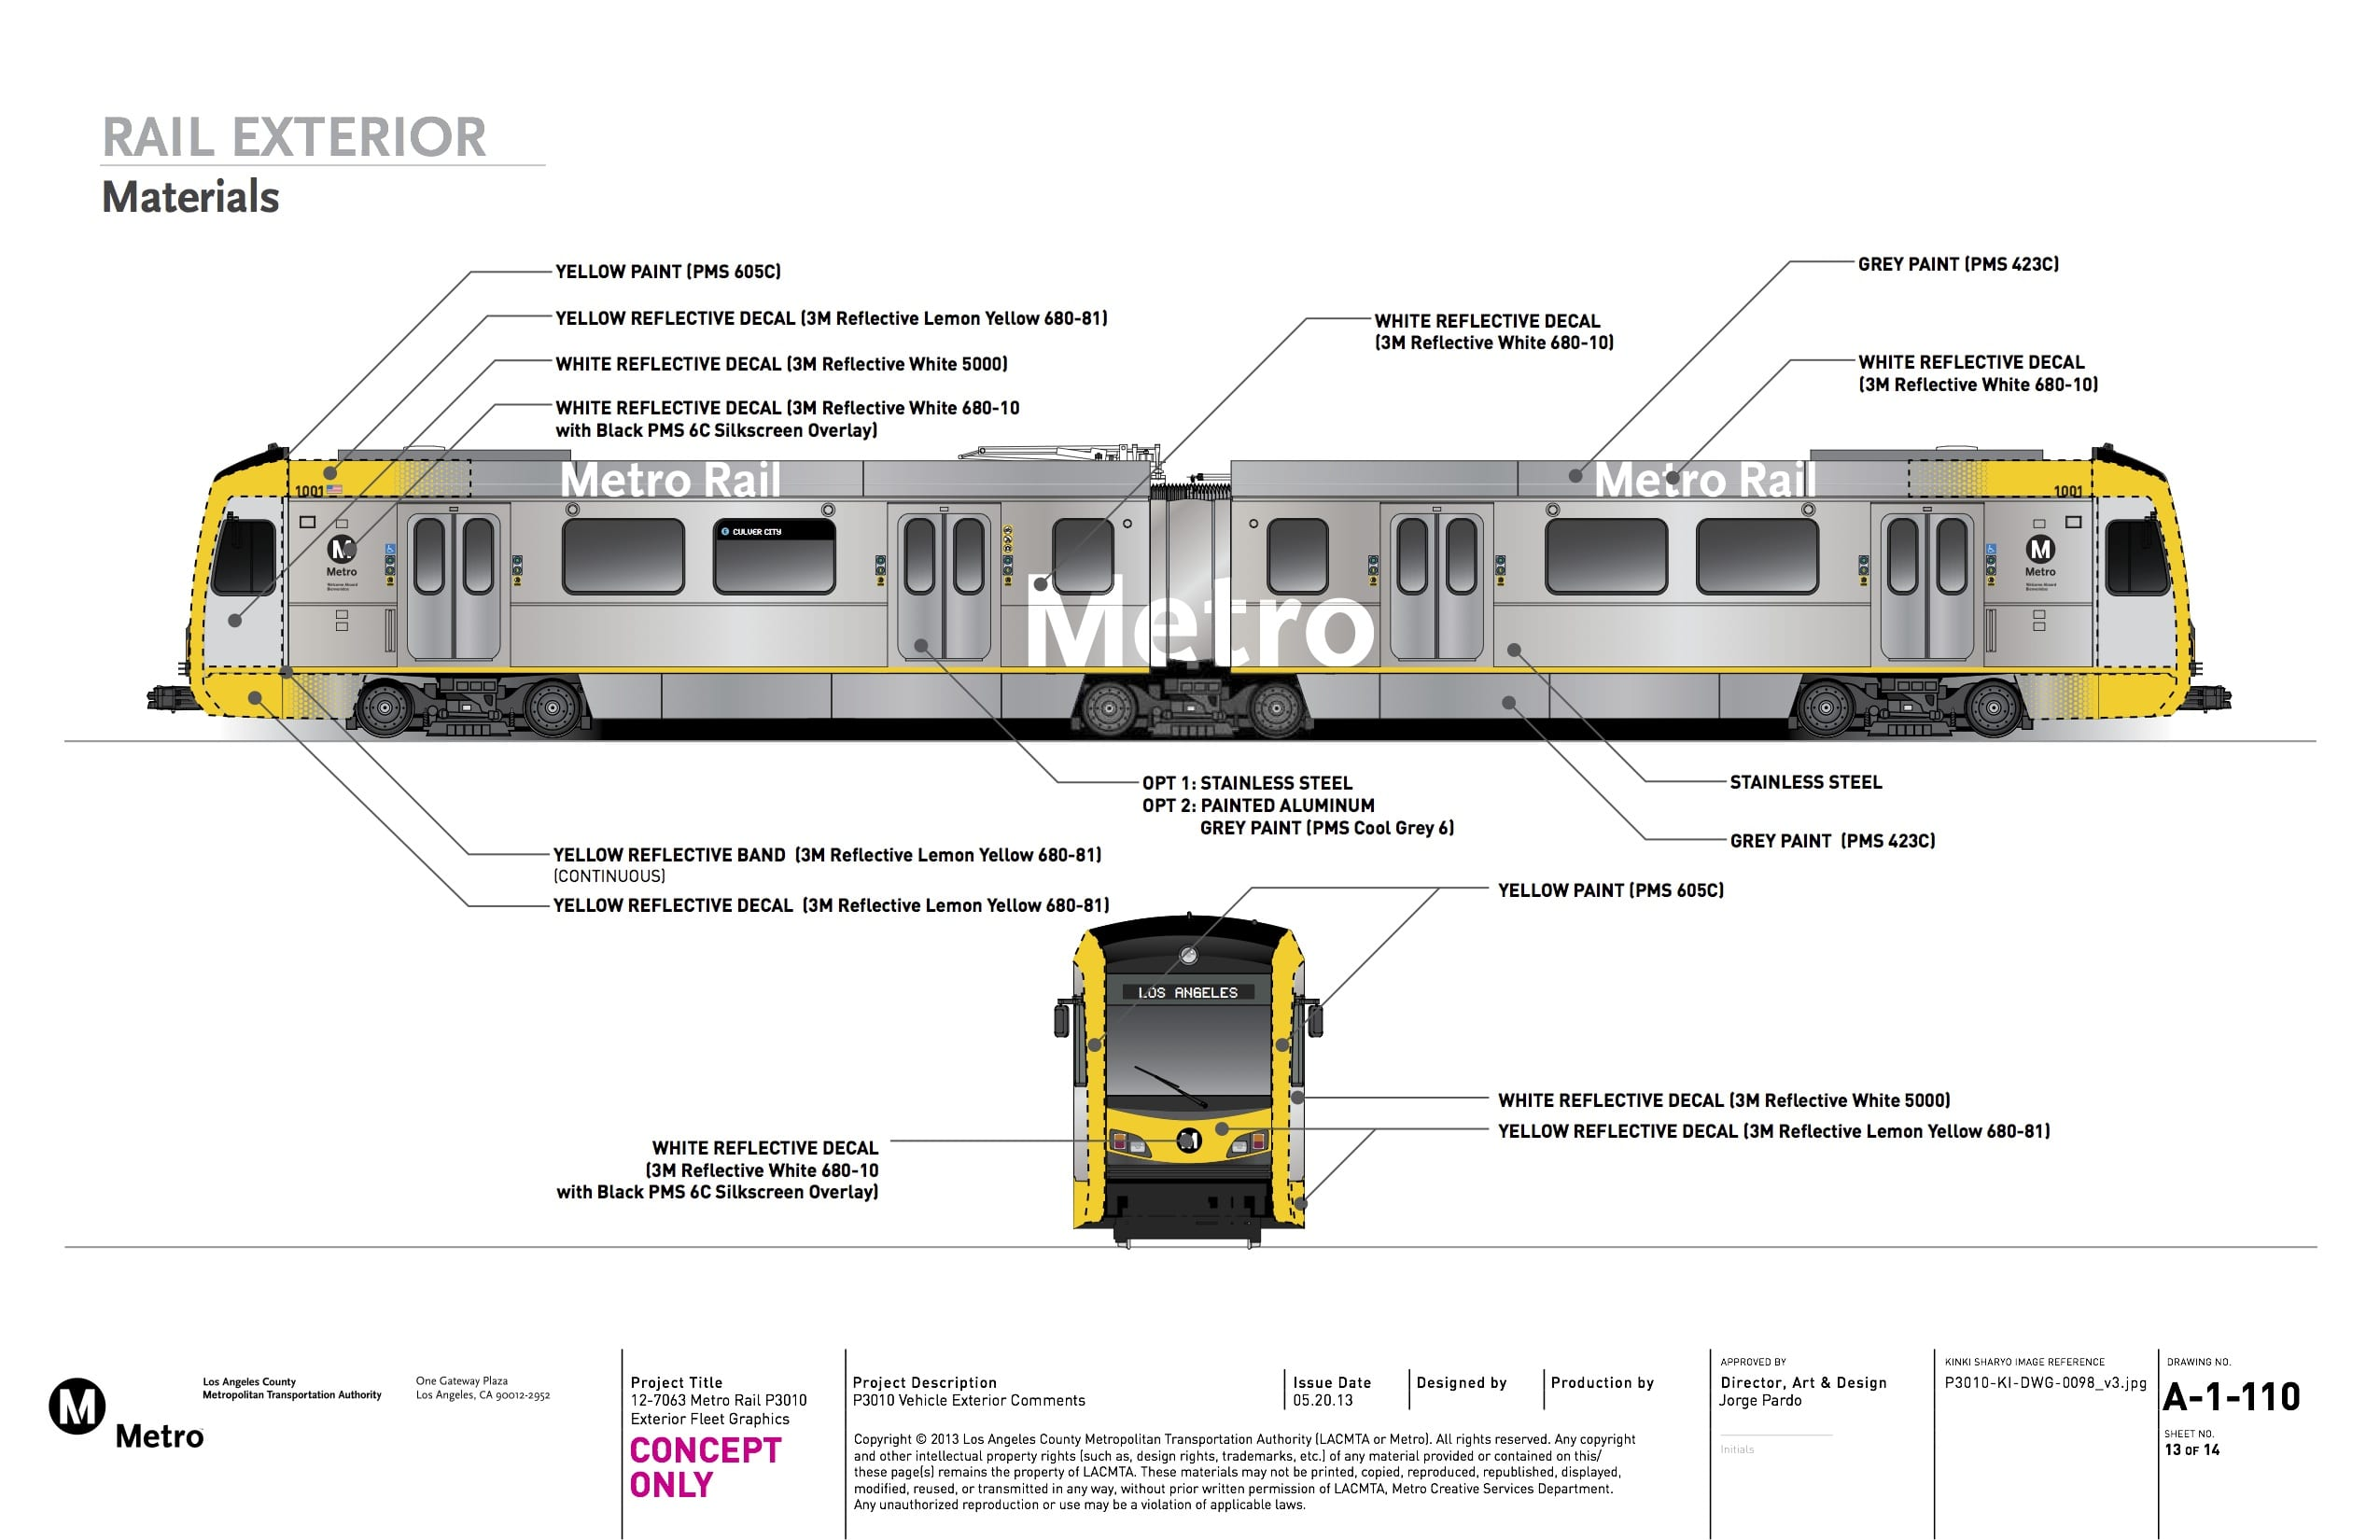 Drawings of the exterior of the new light rail vehicles prepared by Metro's Creative Service department and formally submitted to Kinkisharyo.